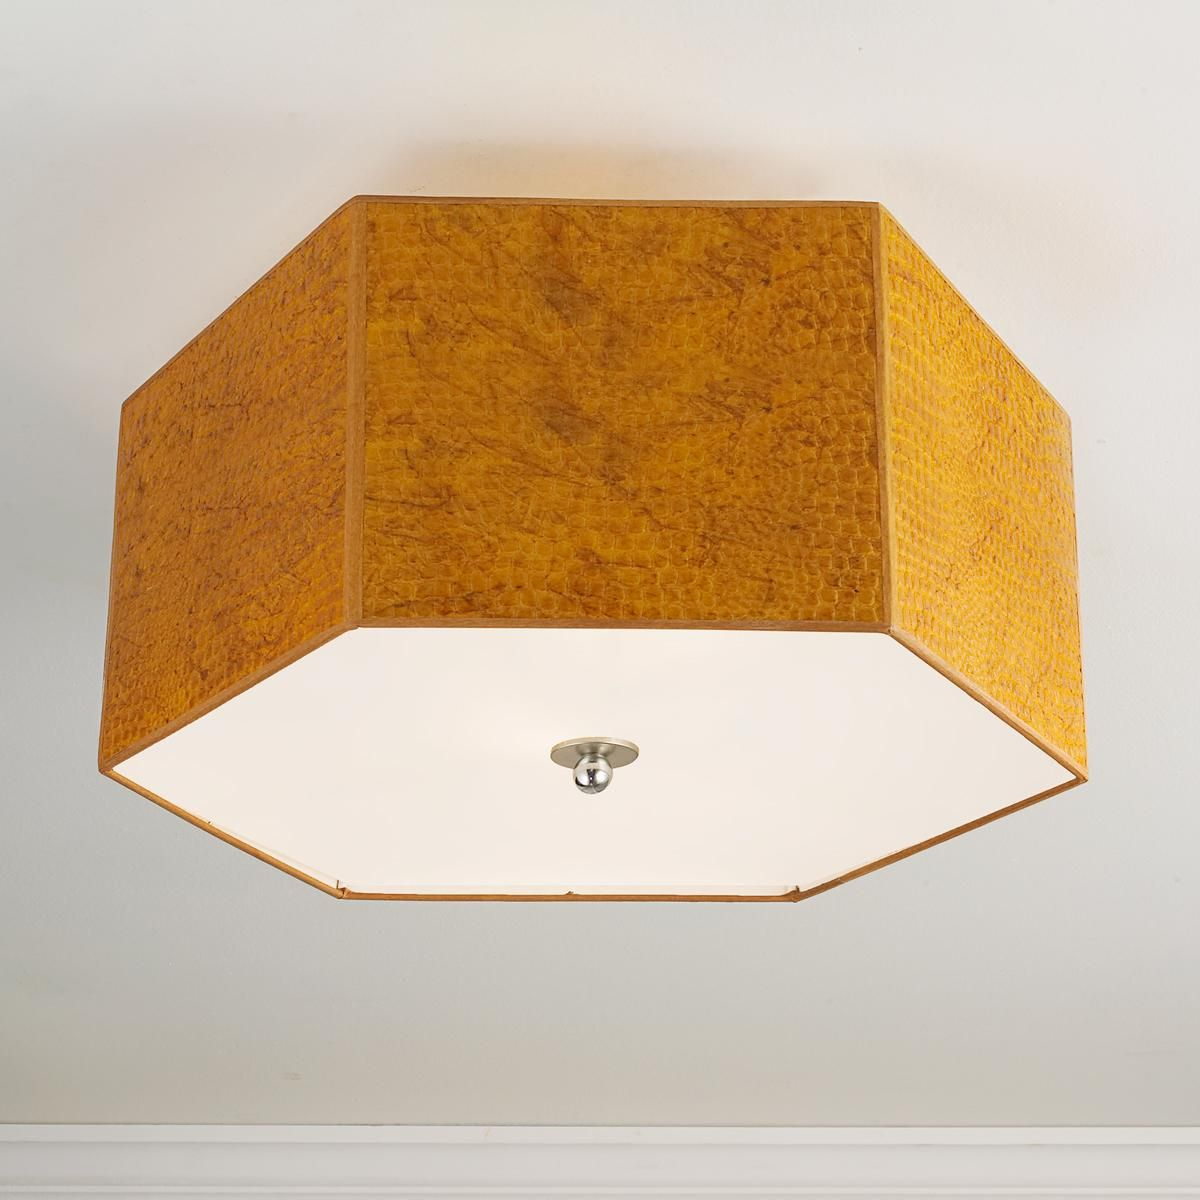 Crocodile Shade Ceiling Light Cover In Trellis Wall Paper